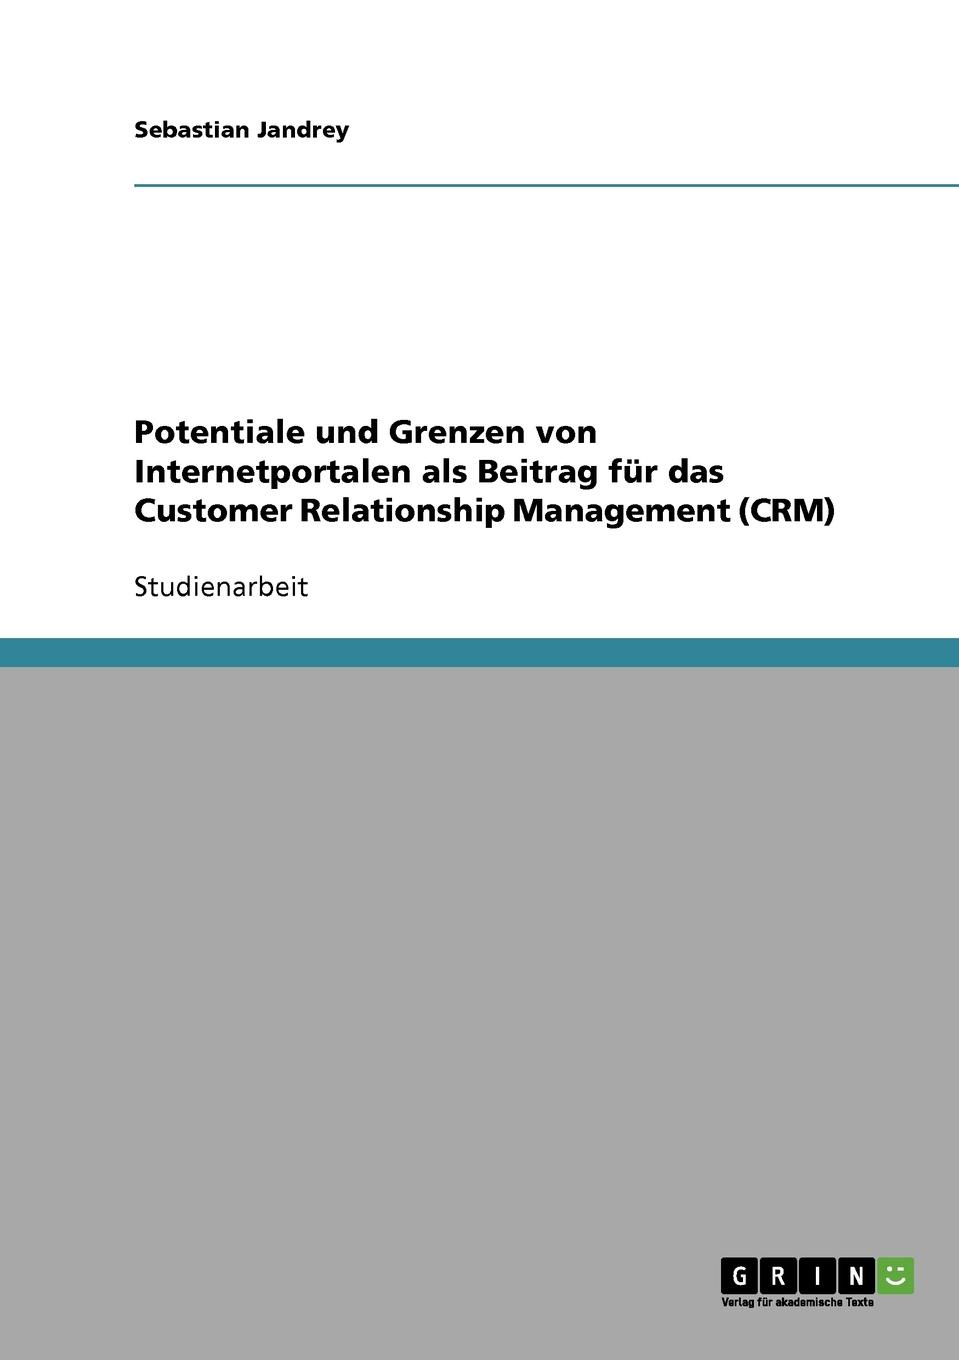 Sebastian Jandrey Potentiale und Grenzen von Internetportalen als Beitrag fur das Customer Relationship Management (CRM) aga kamilla it fur kunden qualitatsmanagement bei customer relationship management